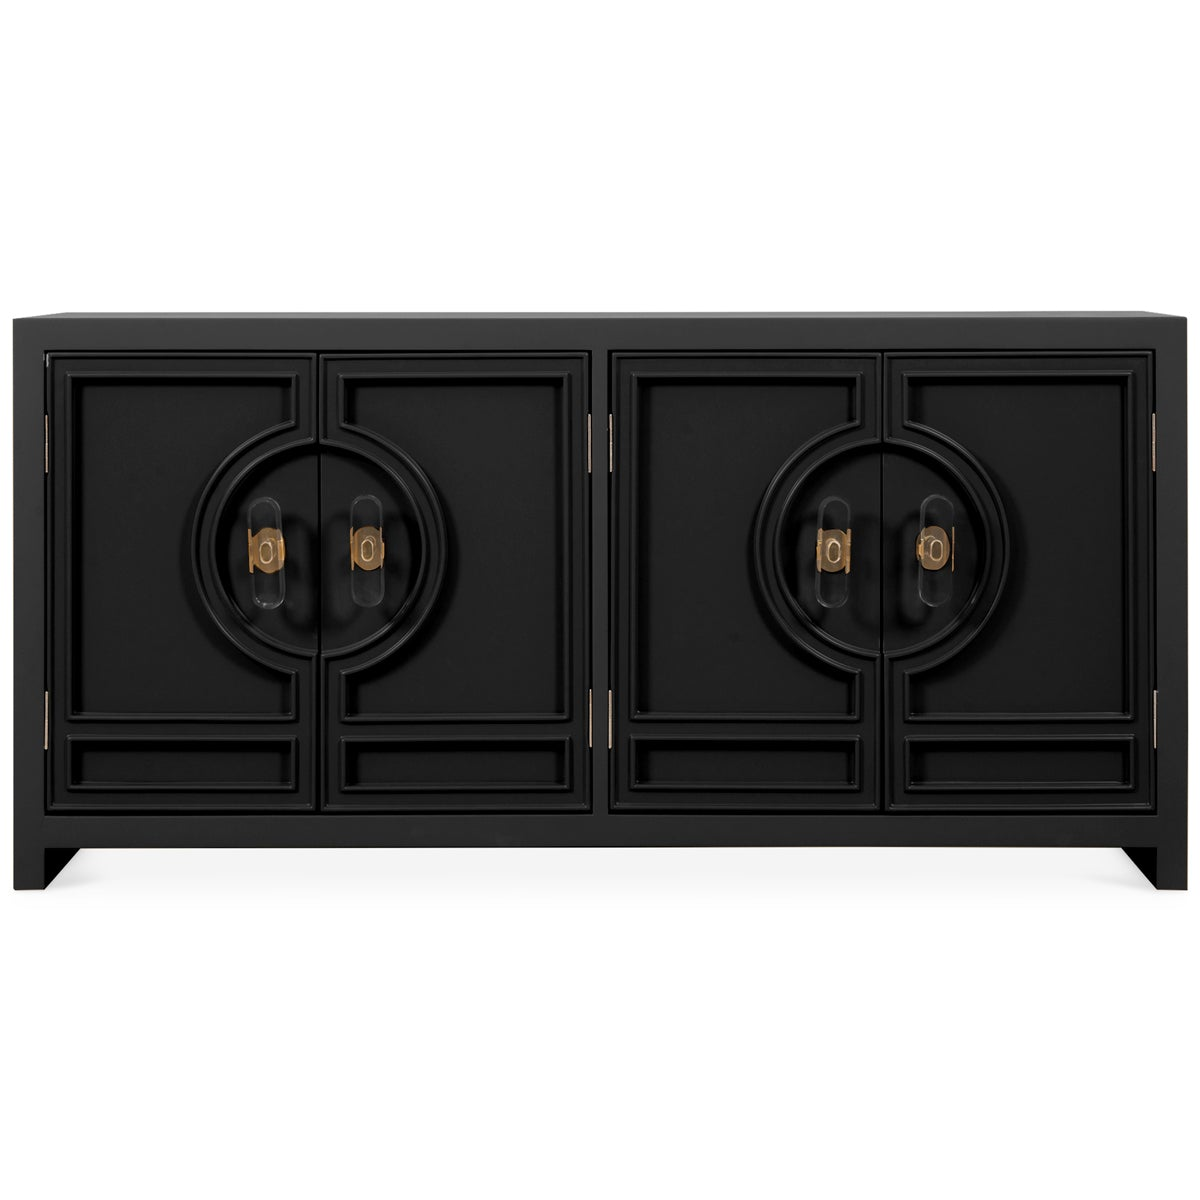 Cannes 4 Door Credenza with Oval Knob Pulls - ModShop1.com